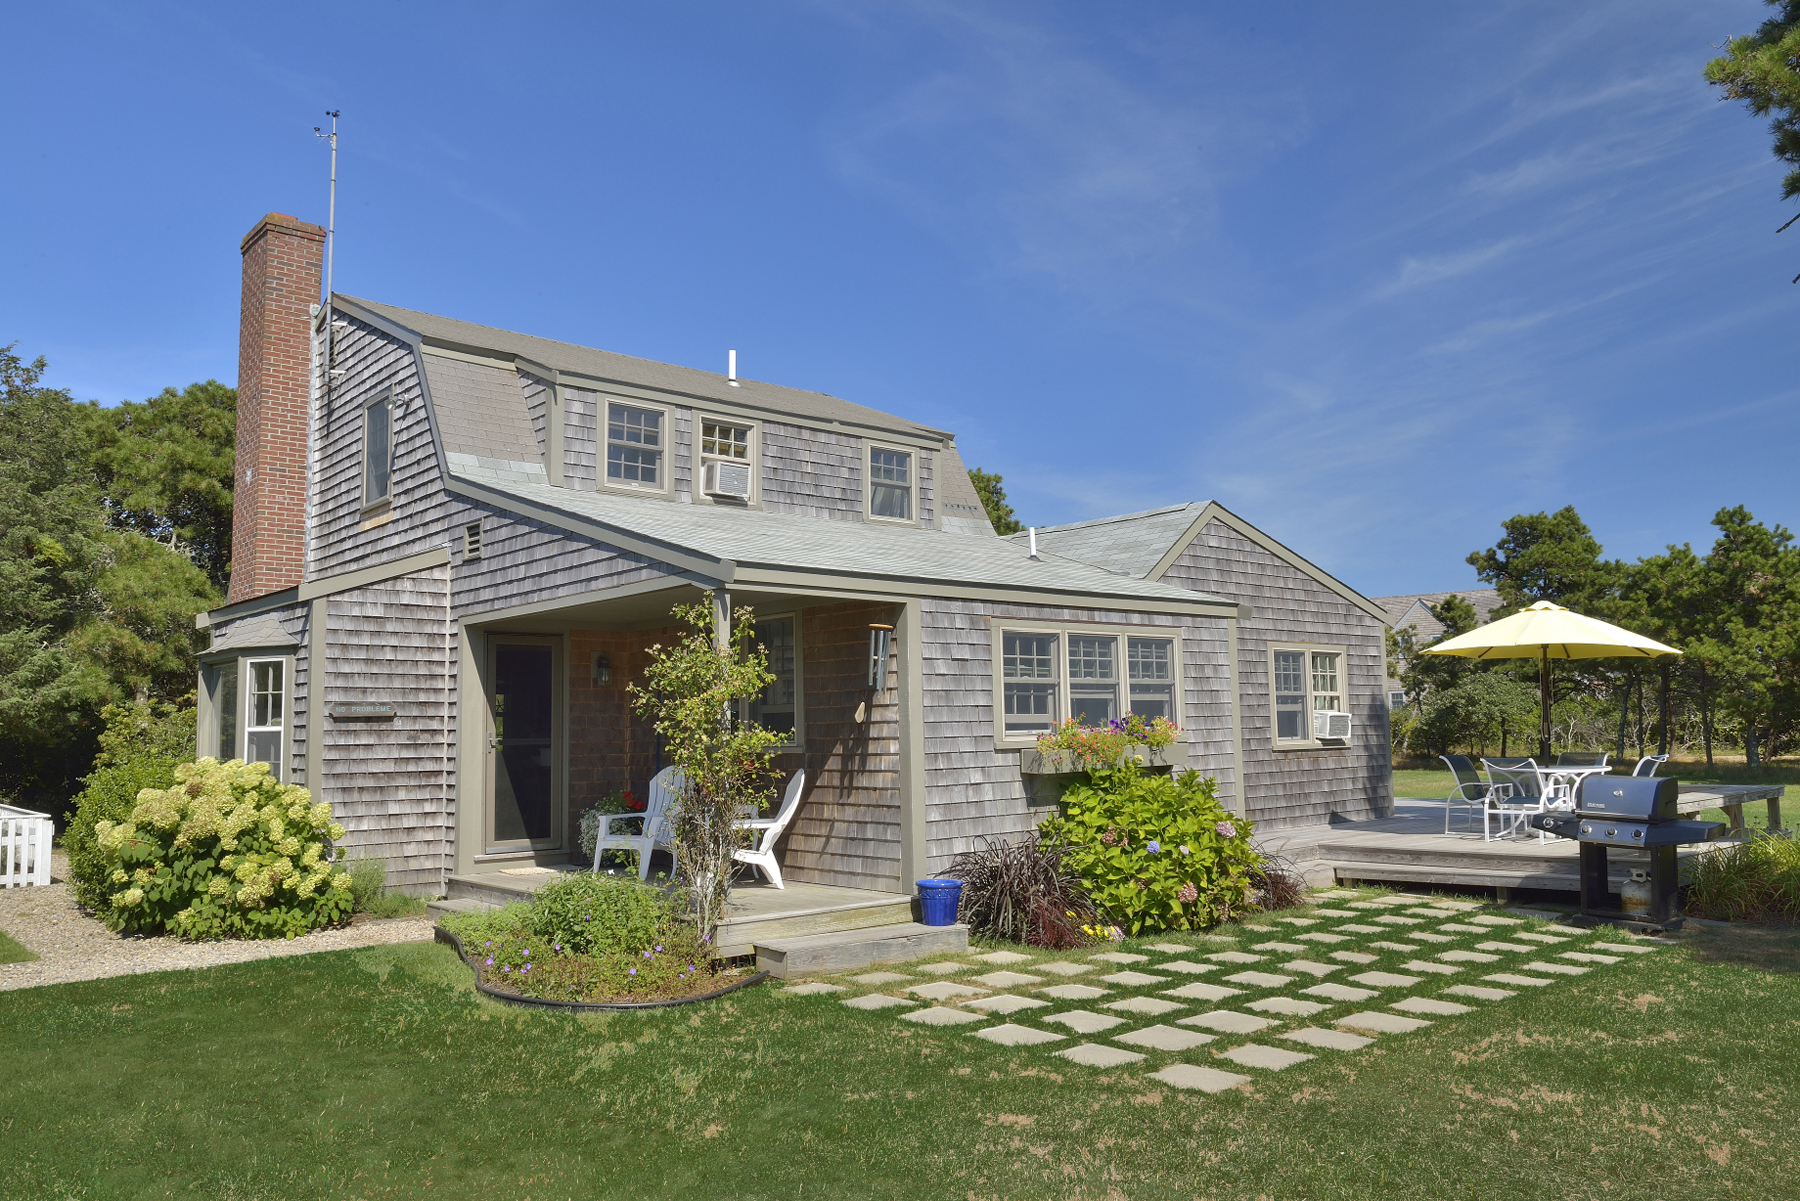 Casa Unifamiliar por un Venta en Surfside Main House and Guest Cottage 15 Masaquet Avenue Nantucket, Massachusetts 02554 Estados Unidos